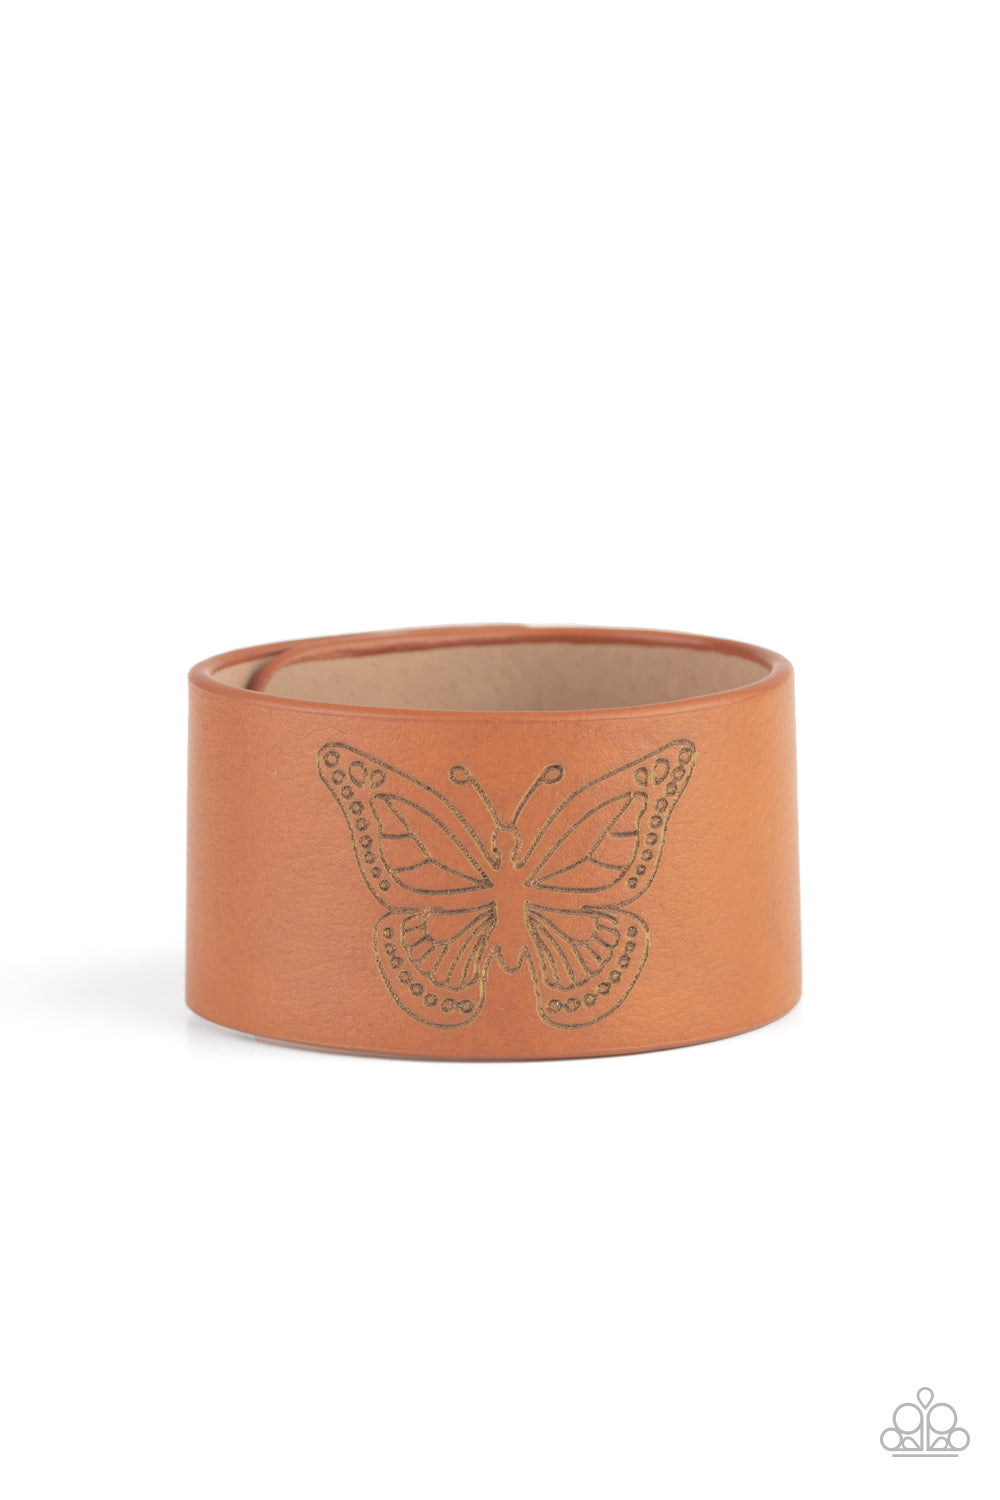 Paparazzi Flirty Flutter Brown Single Wrap Snap Bracelet - Life of the Party Exclusive August 2020